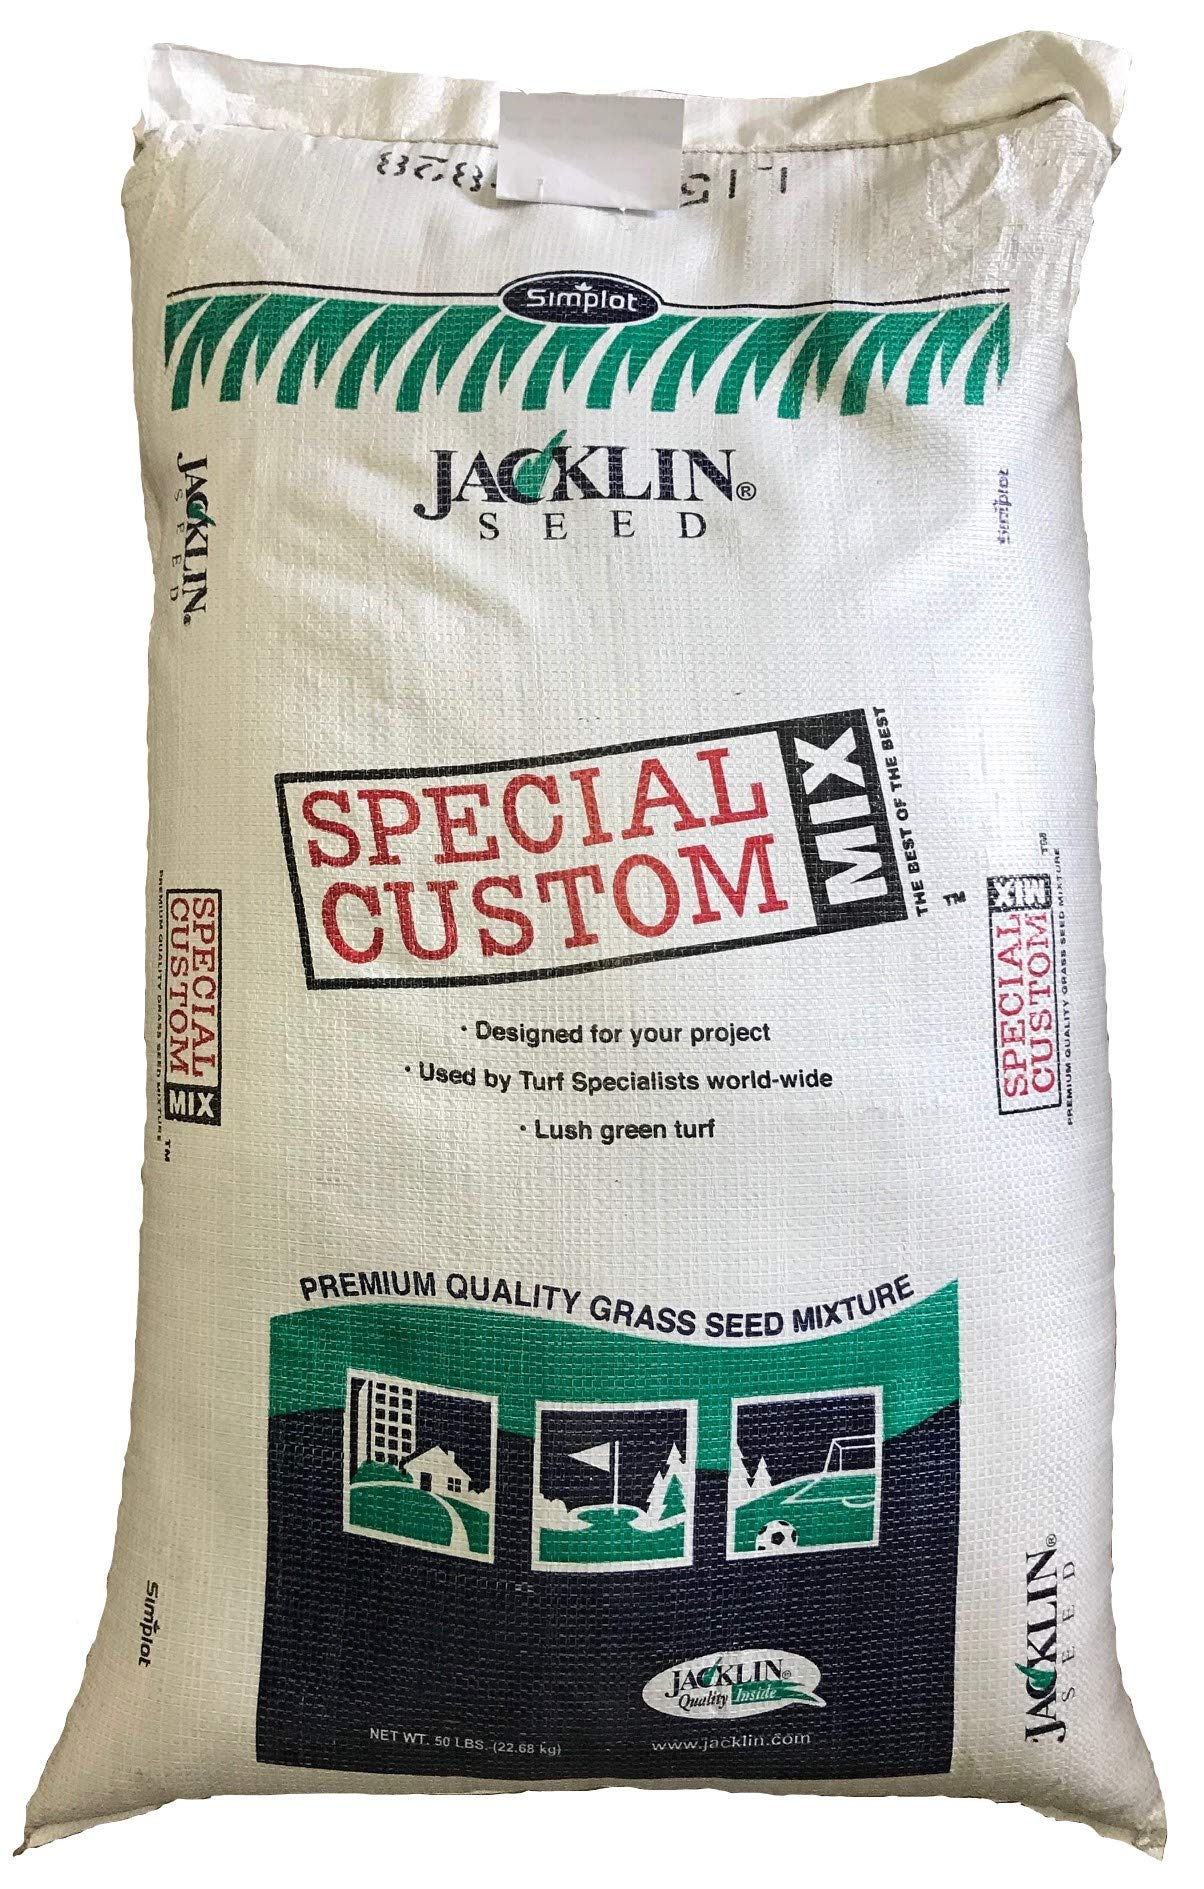 Jacklin Seed - Swift & Sure | Sun and Shade Blend | 40% Perennial Ryegrass, 30% Kentucky Bluegrass, 30% Creeping Red Fescue | Certified Grass Seed (5-50 lbs) (50 lbs (20,000 sq ft)) by Pendelton Turf Supply